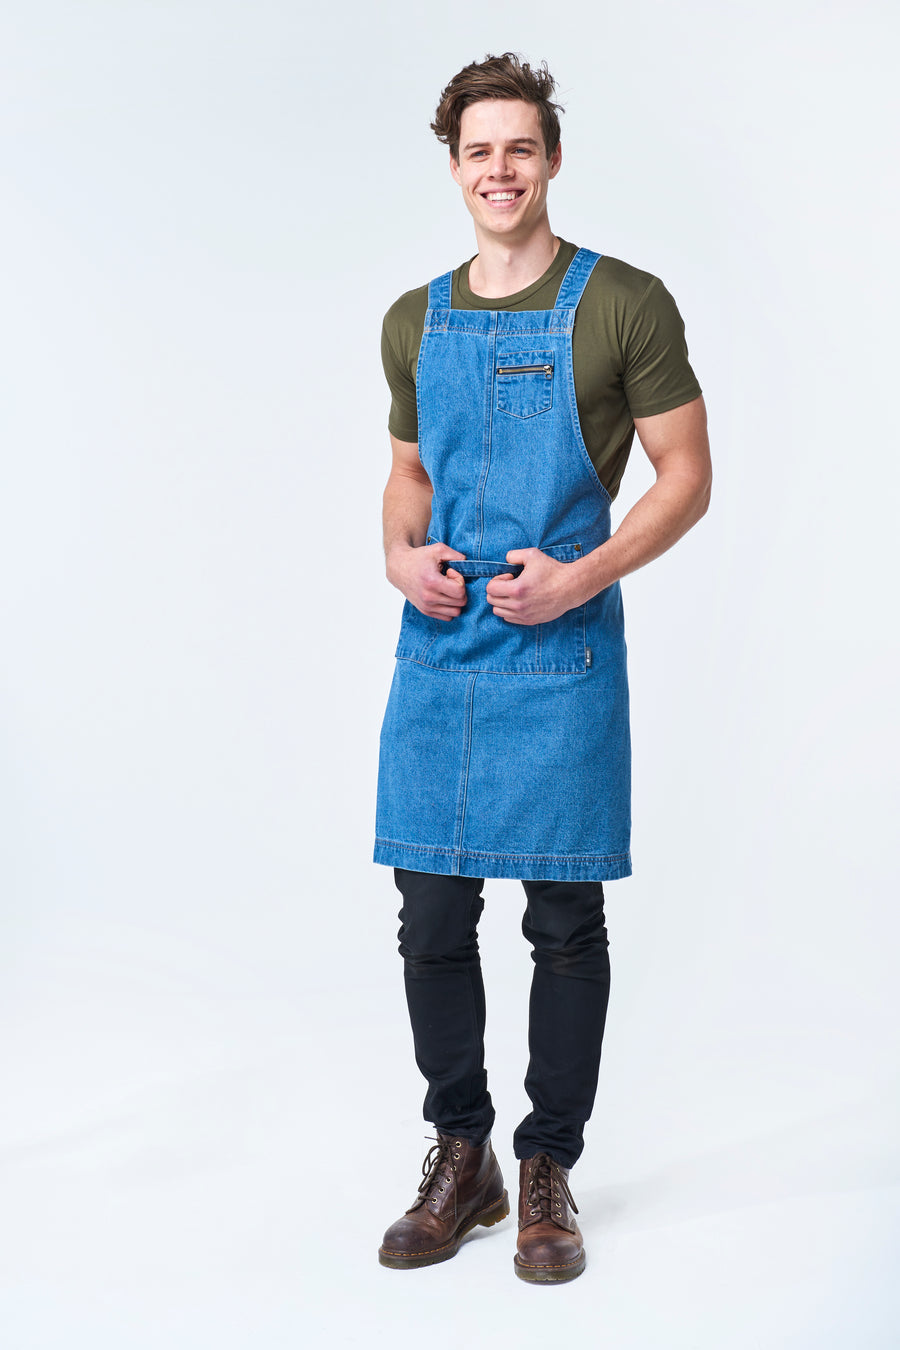 HAMPTON DENIM 2 pocket Apron - Vintage Blue